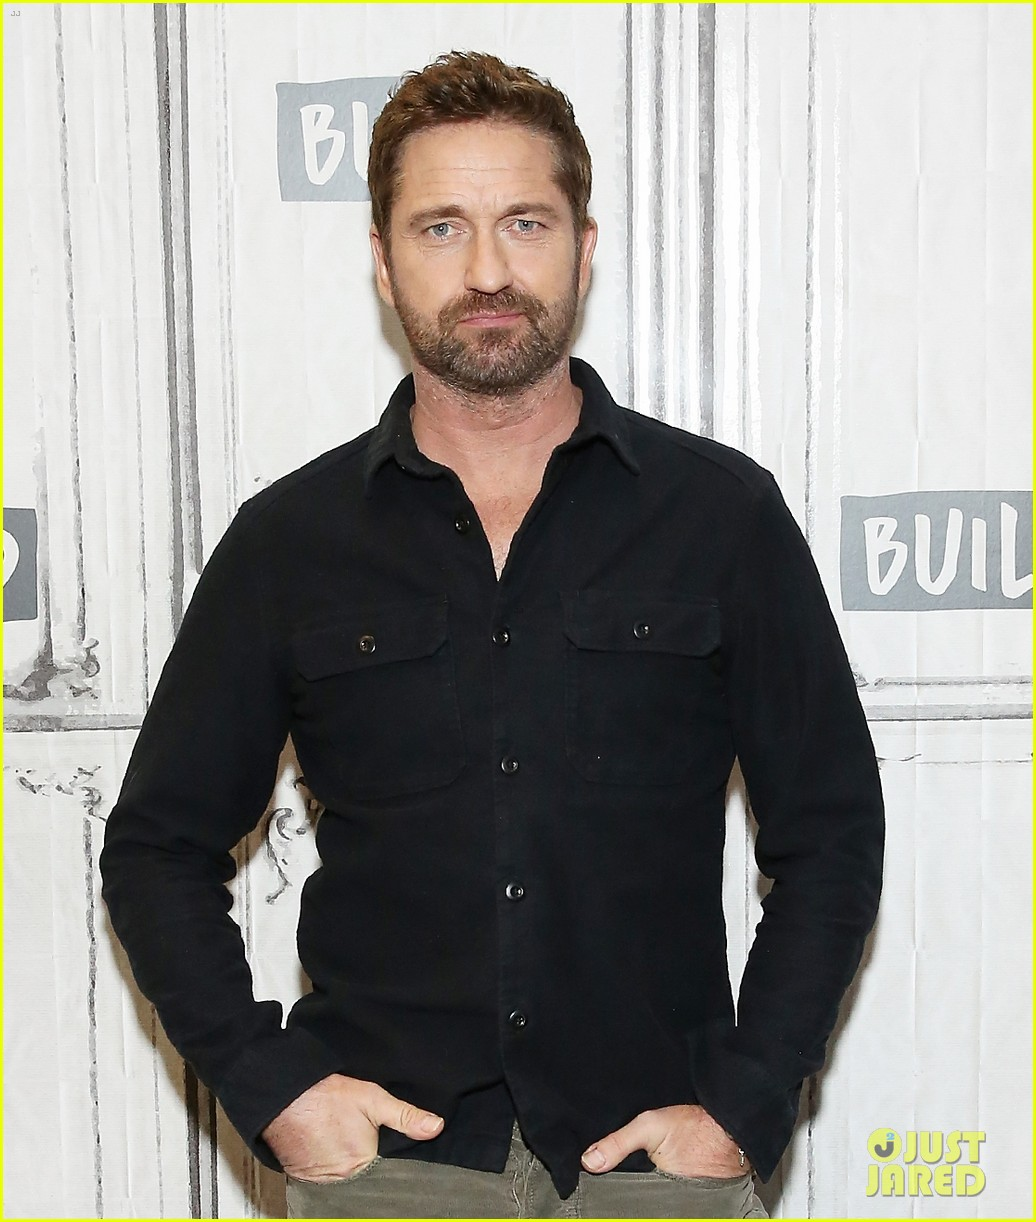 gerard butler monday october 22 appearances 024168769